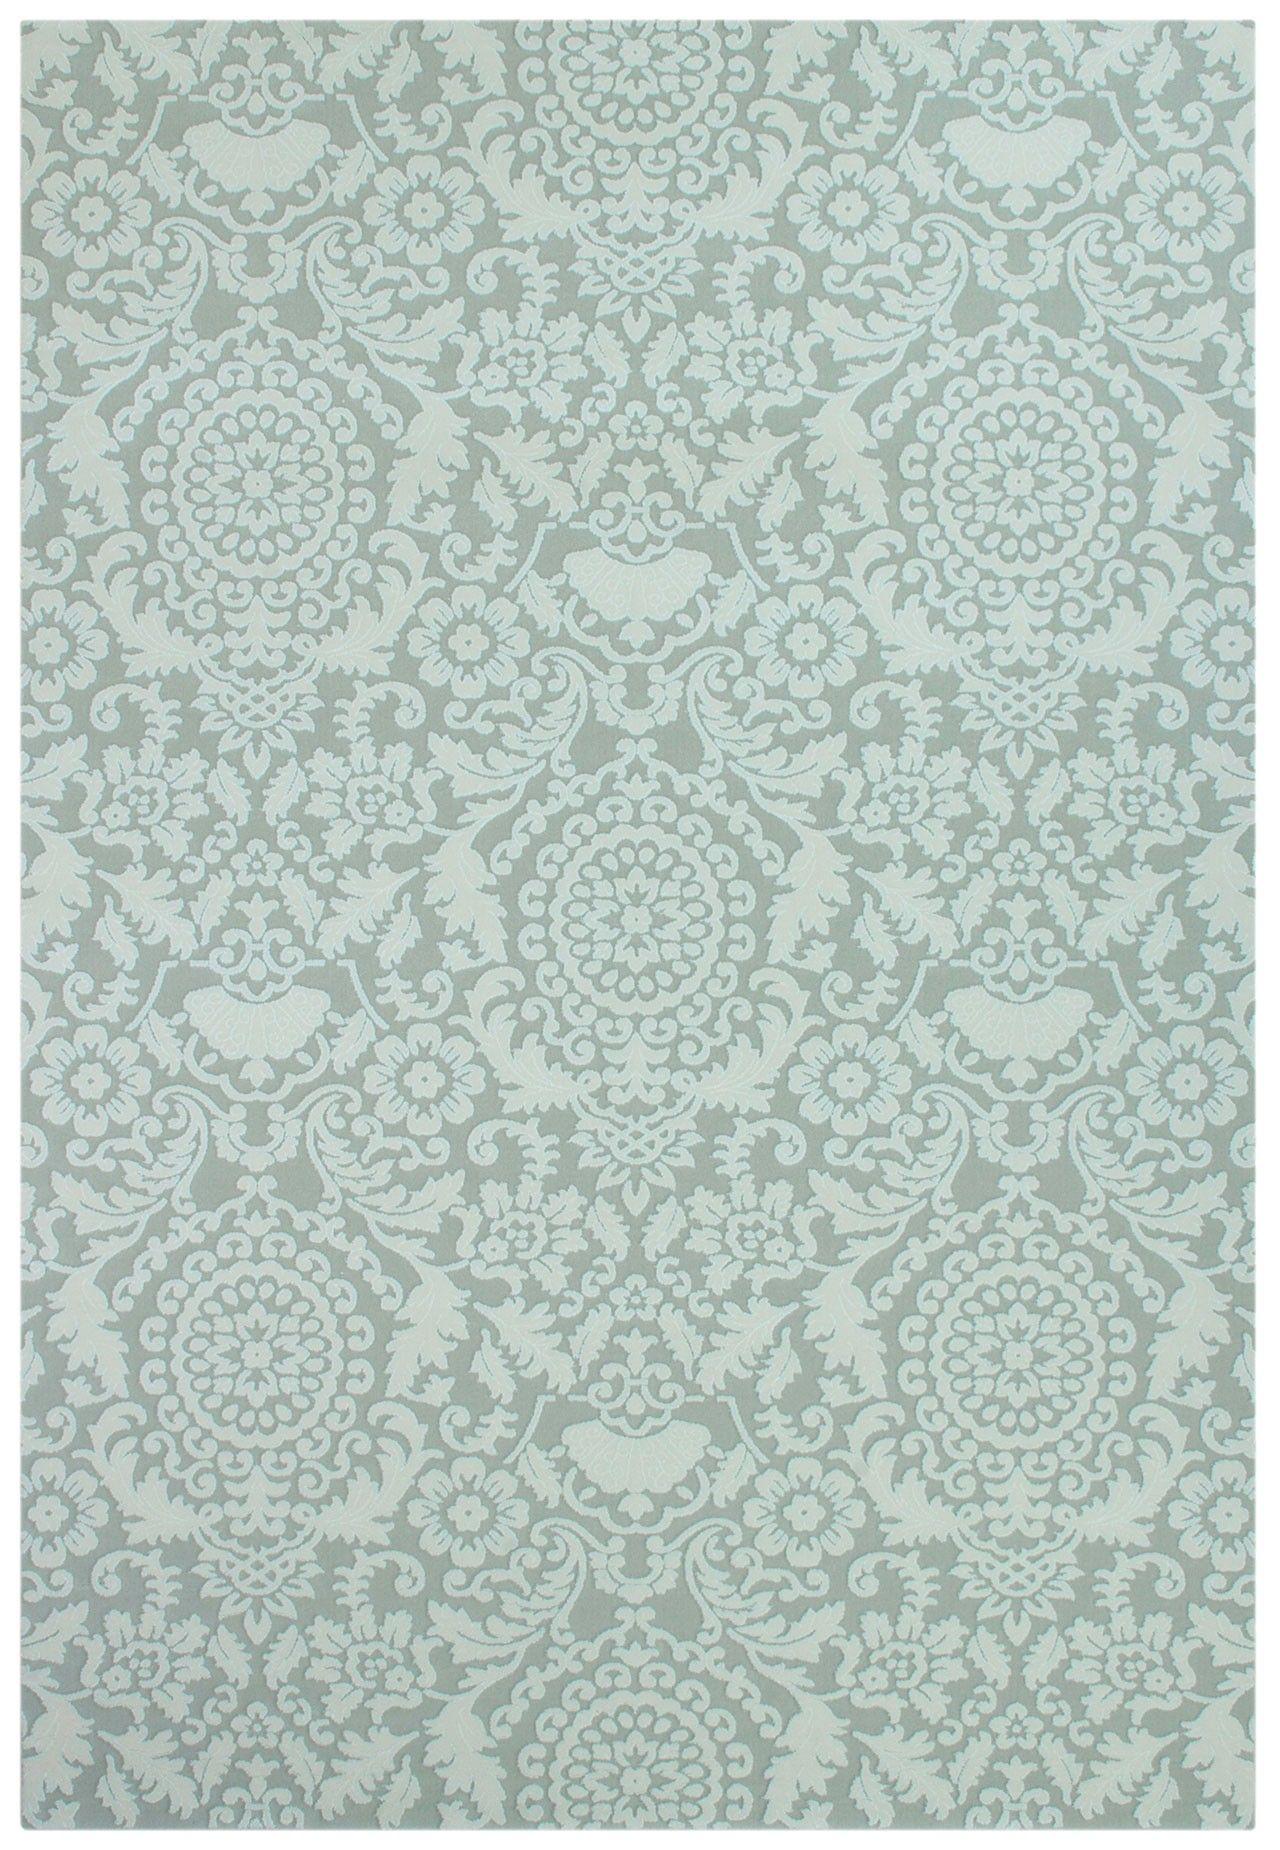 Teppich Floral Vintage Prato 8016 Light Green Teppich Carpet Orient Bordüren